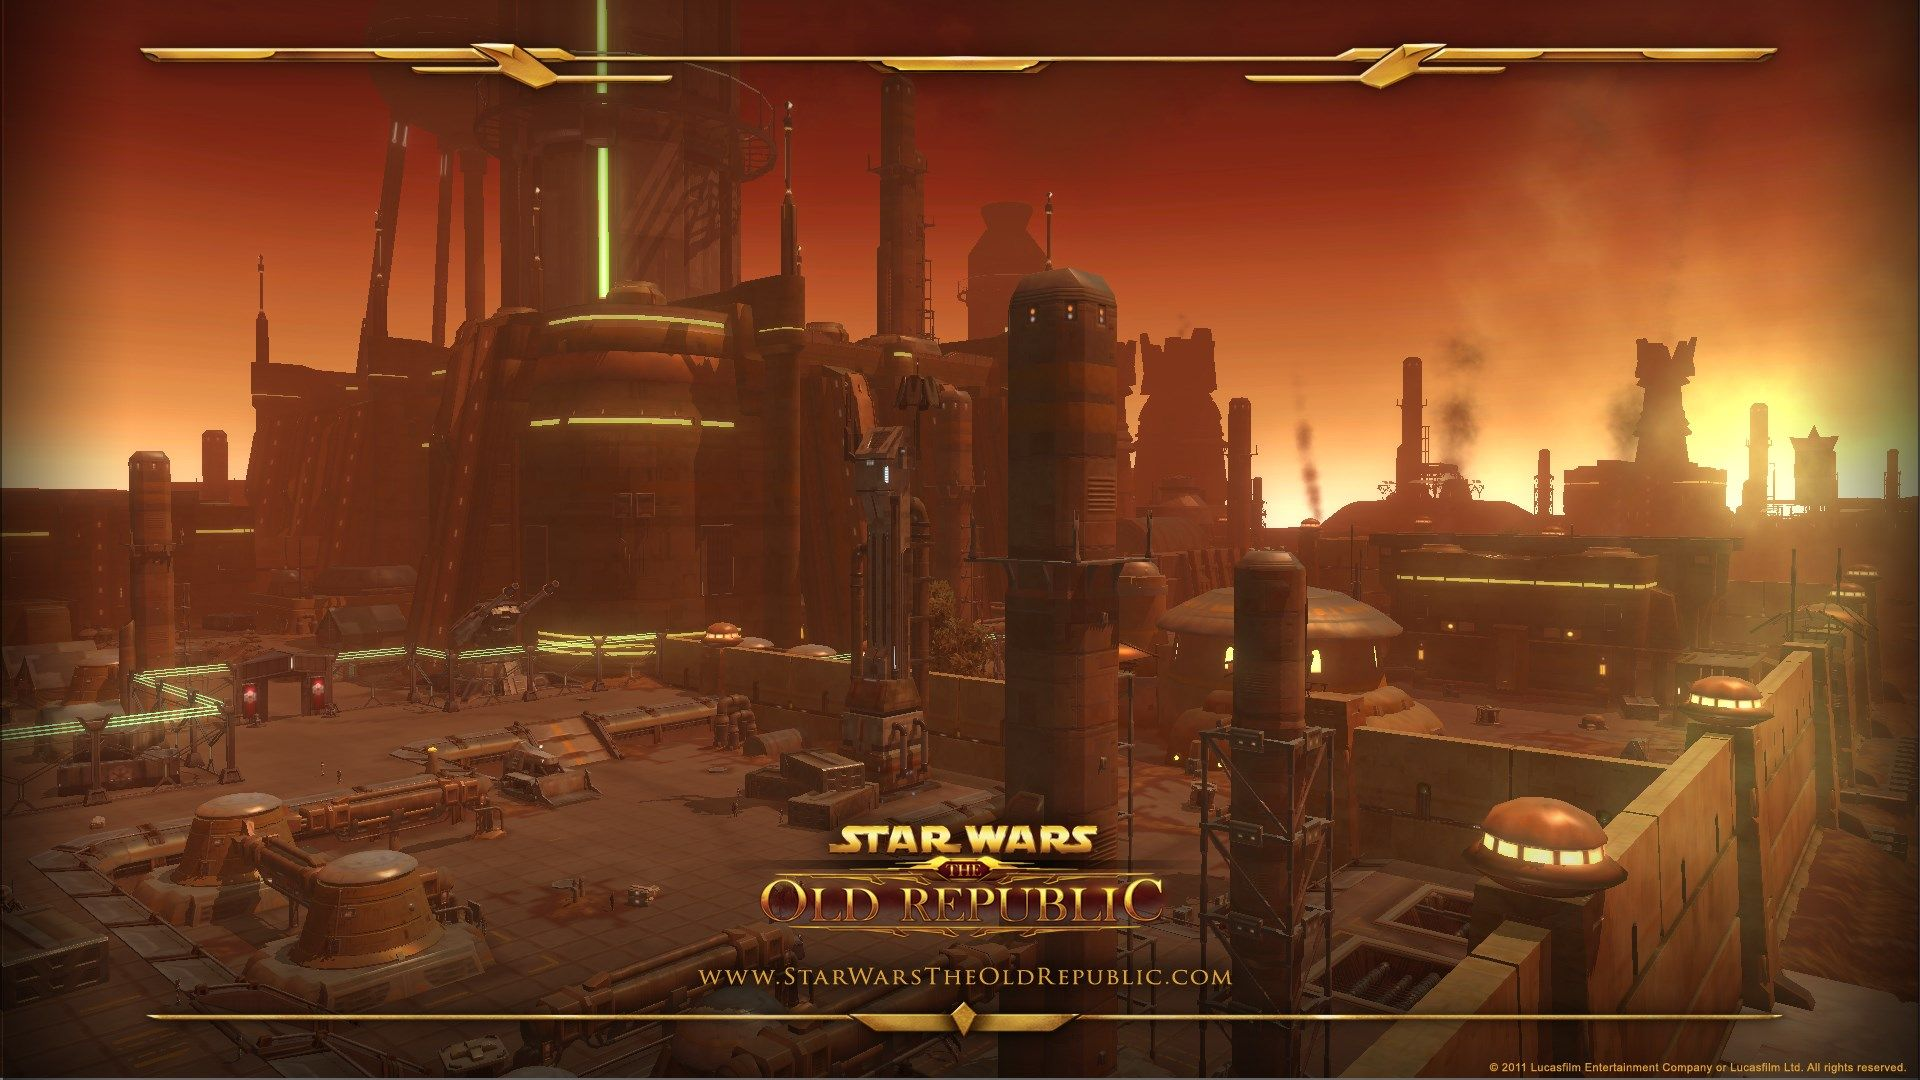 1920x1080 Star Wars Knights Of The Old Republic Game Wallpaper Star Wars The Old Republic Pictures Star Wars Games